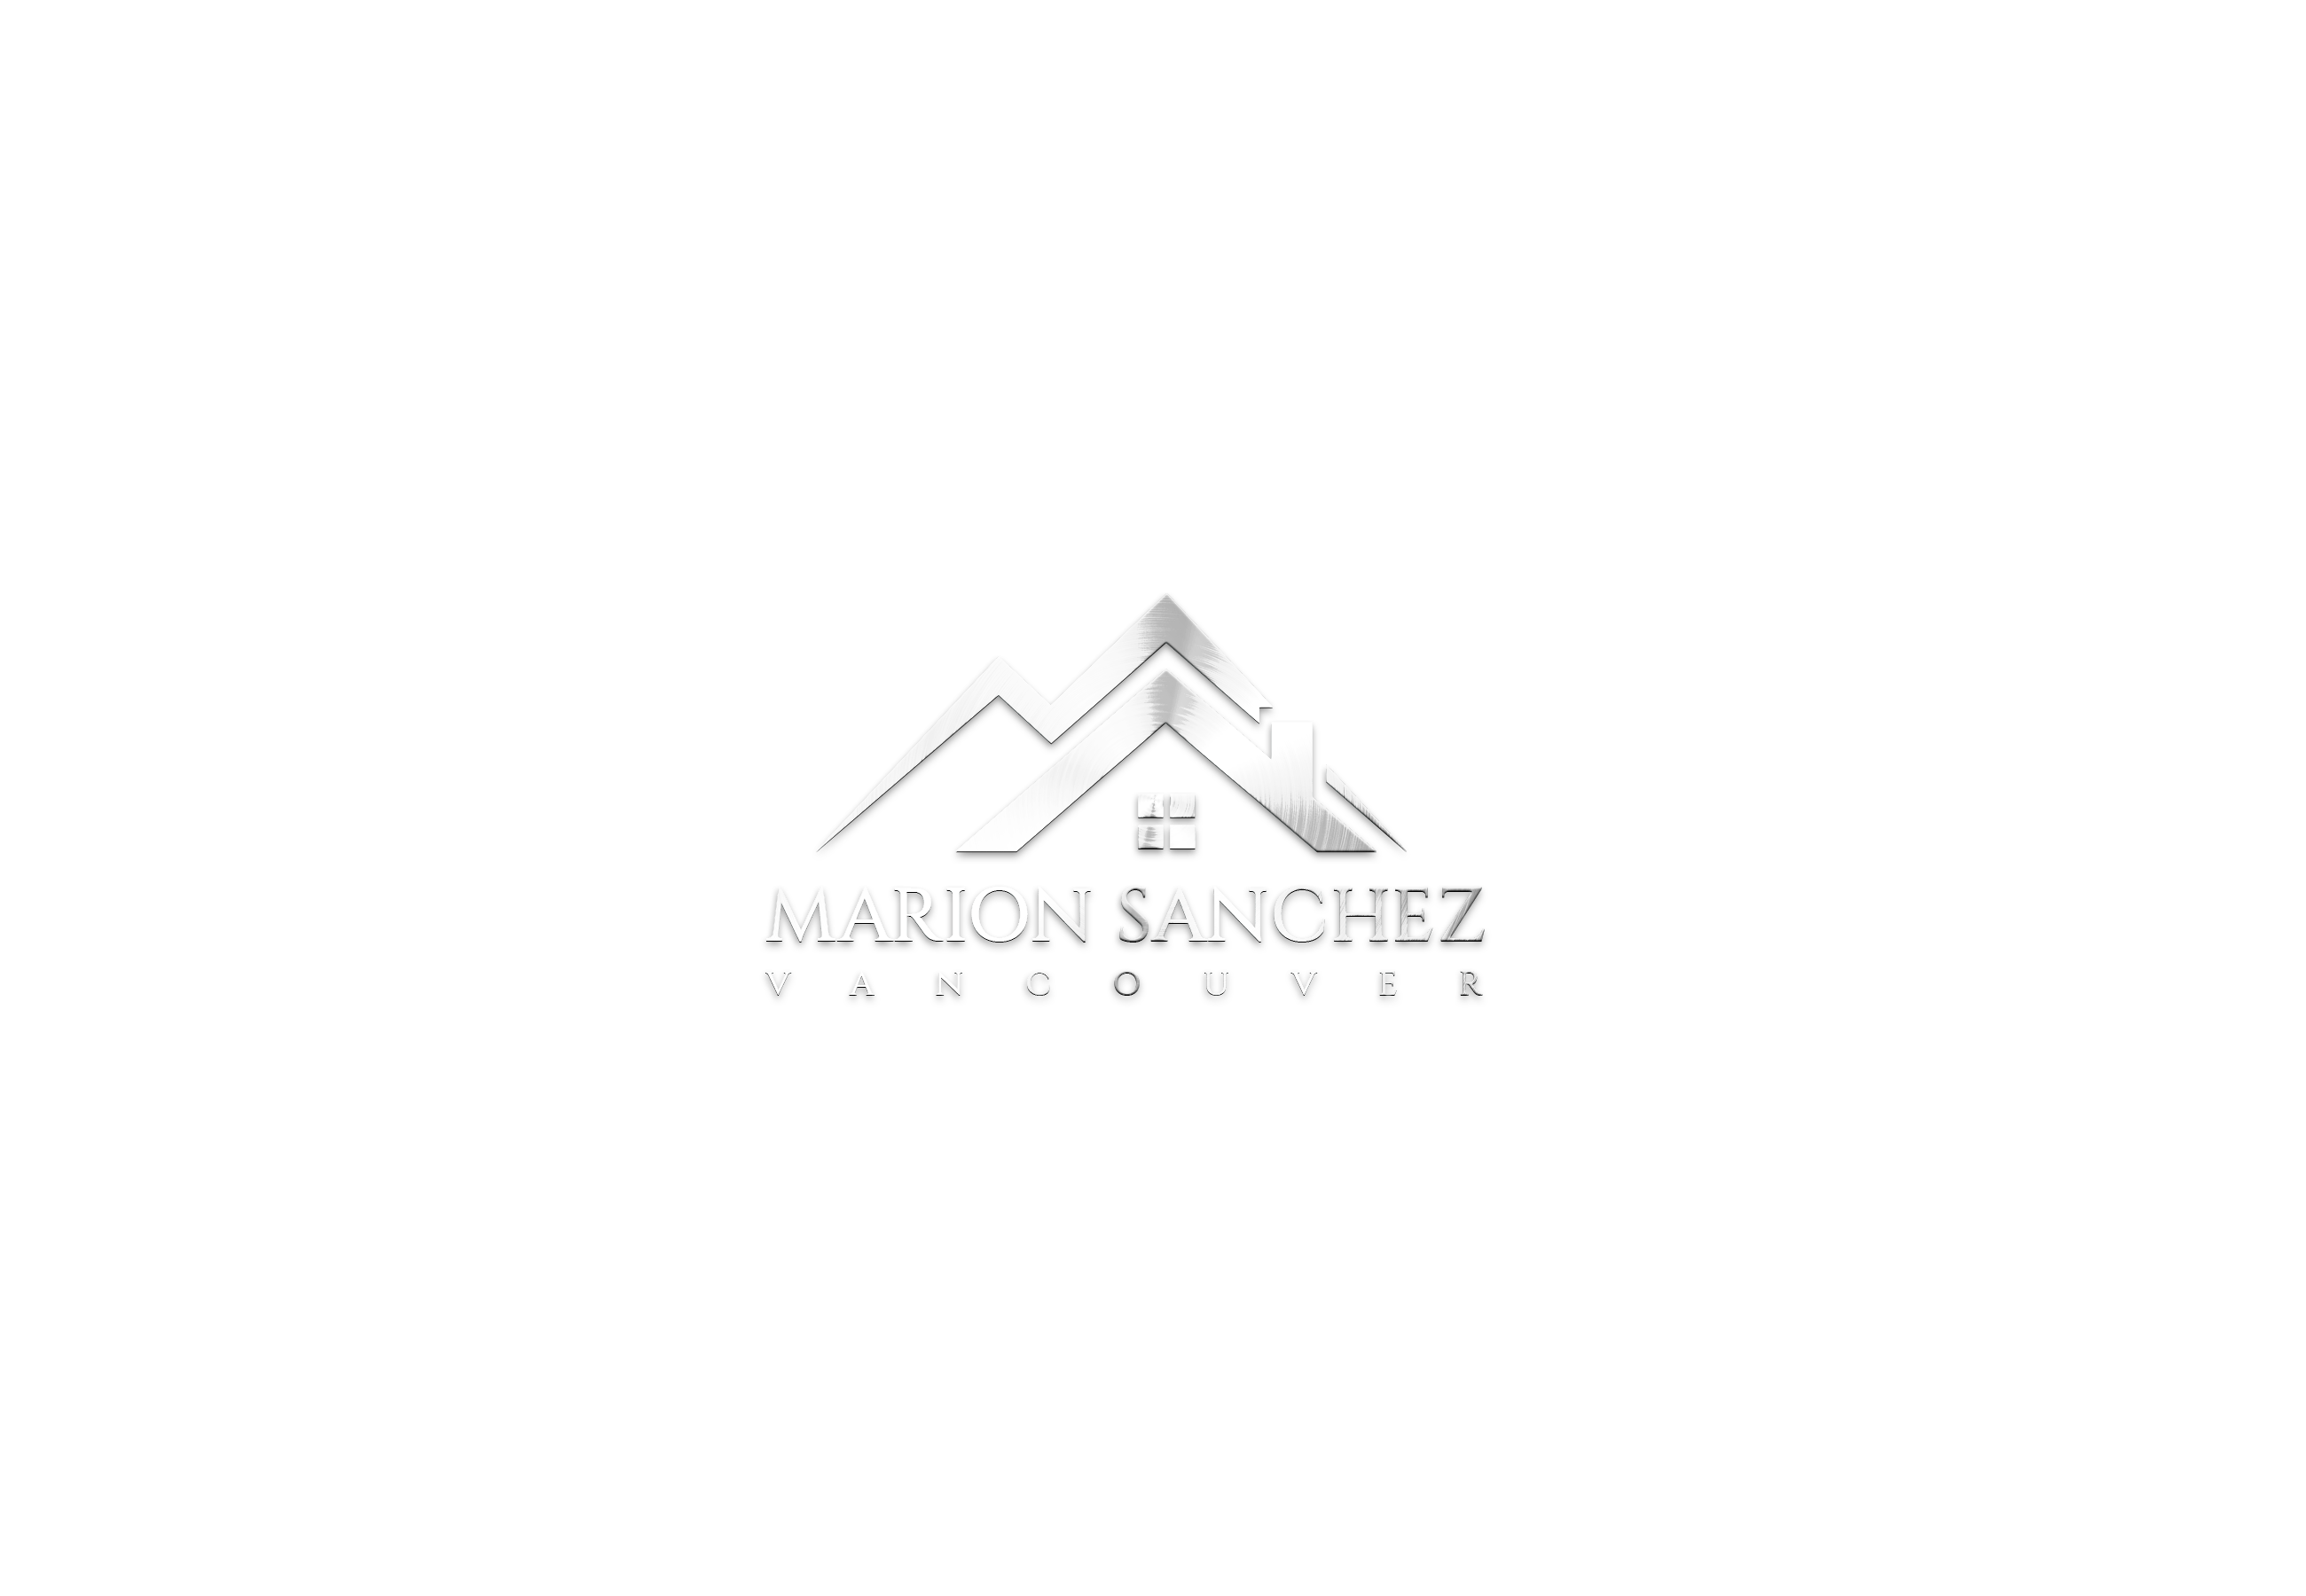 Contact Marion Sanchez for Property Advisory Matters